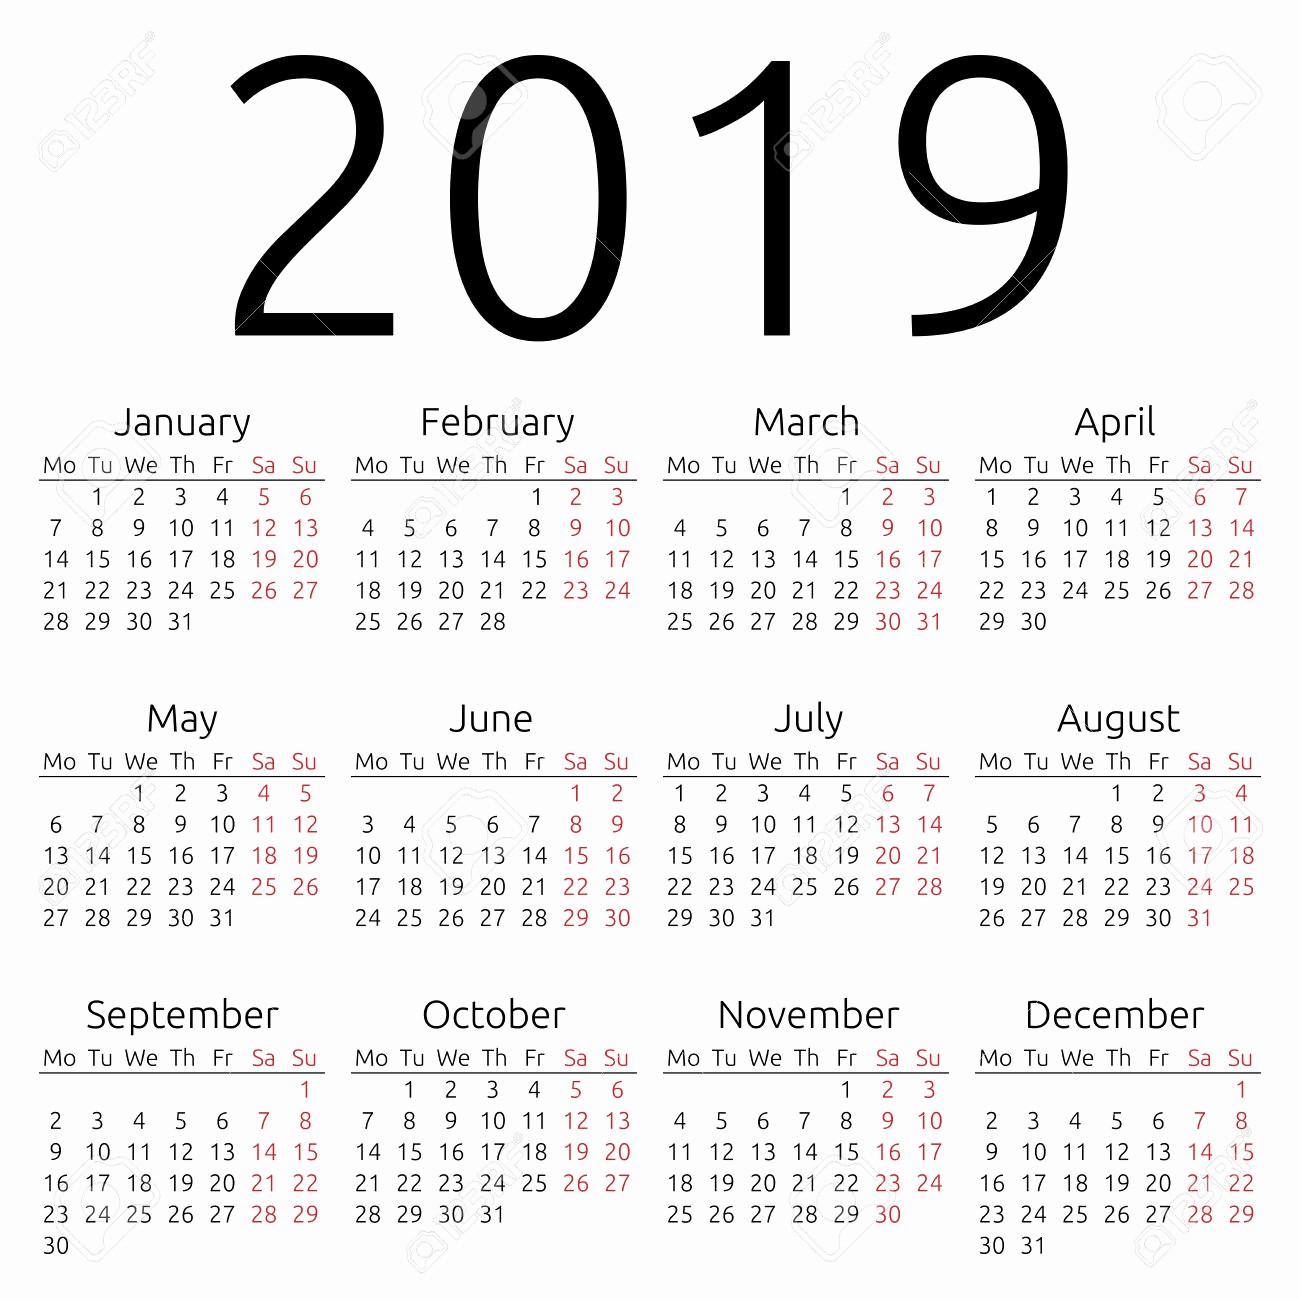 2019 Yearly Calendar with Holidays Awesome Yearly Calendar 2019